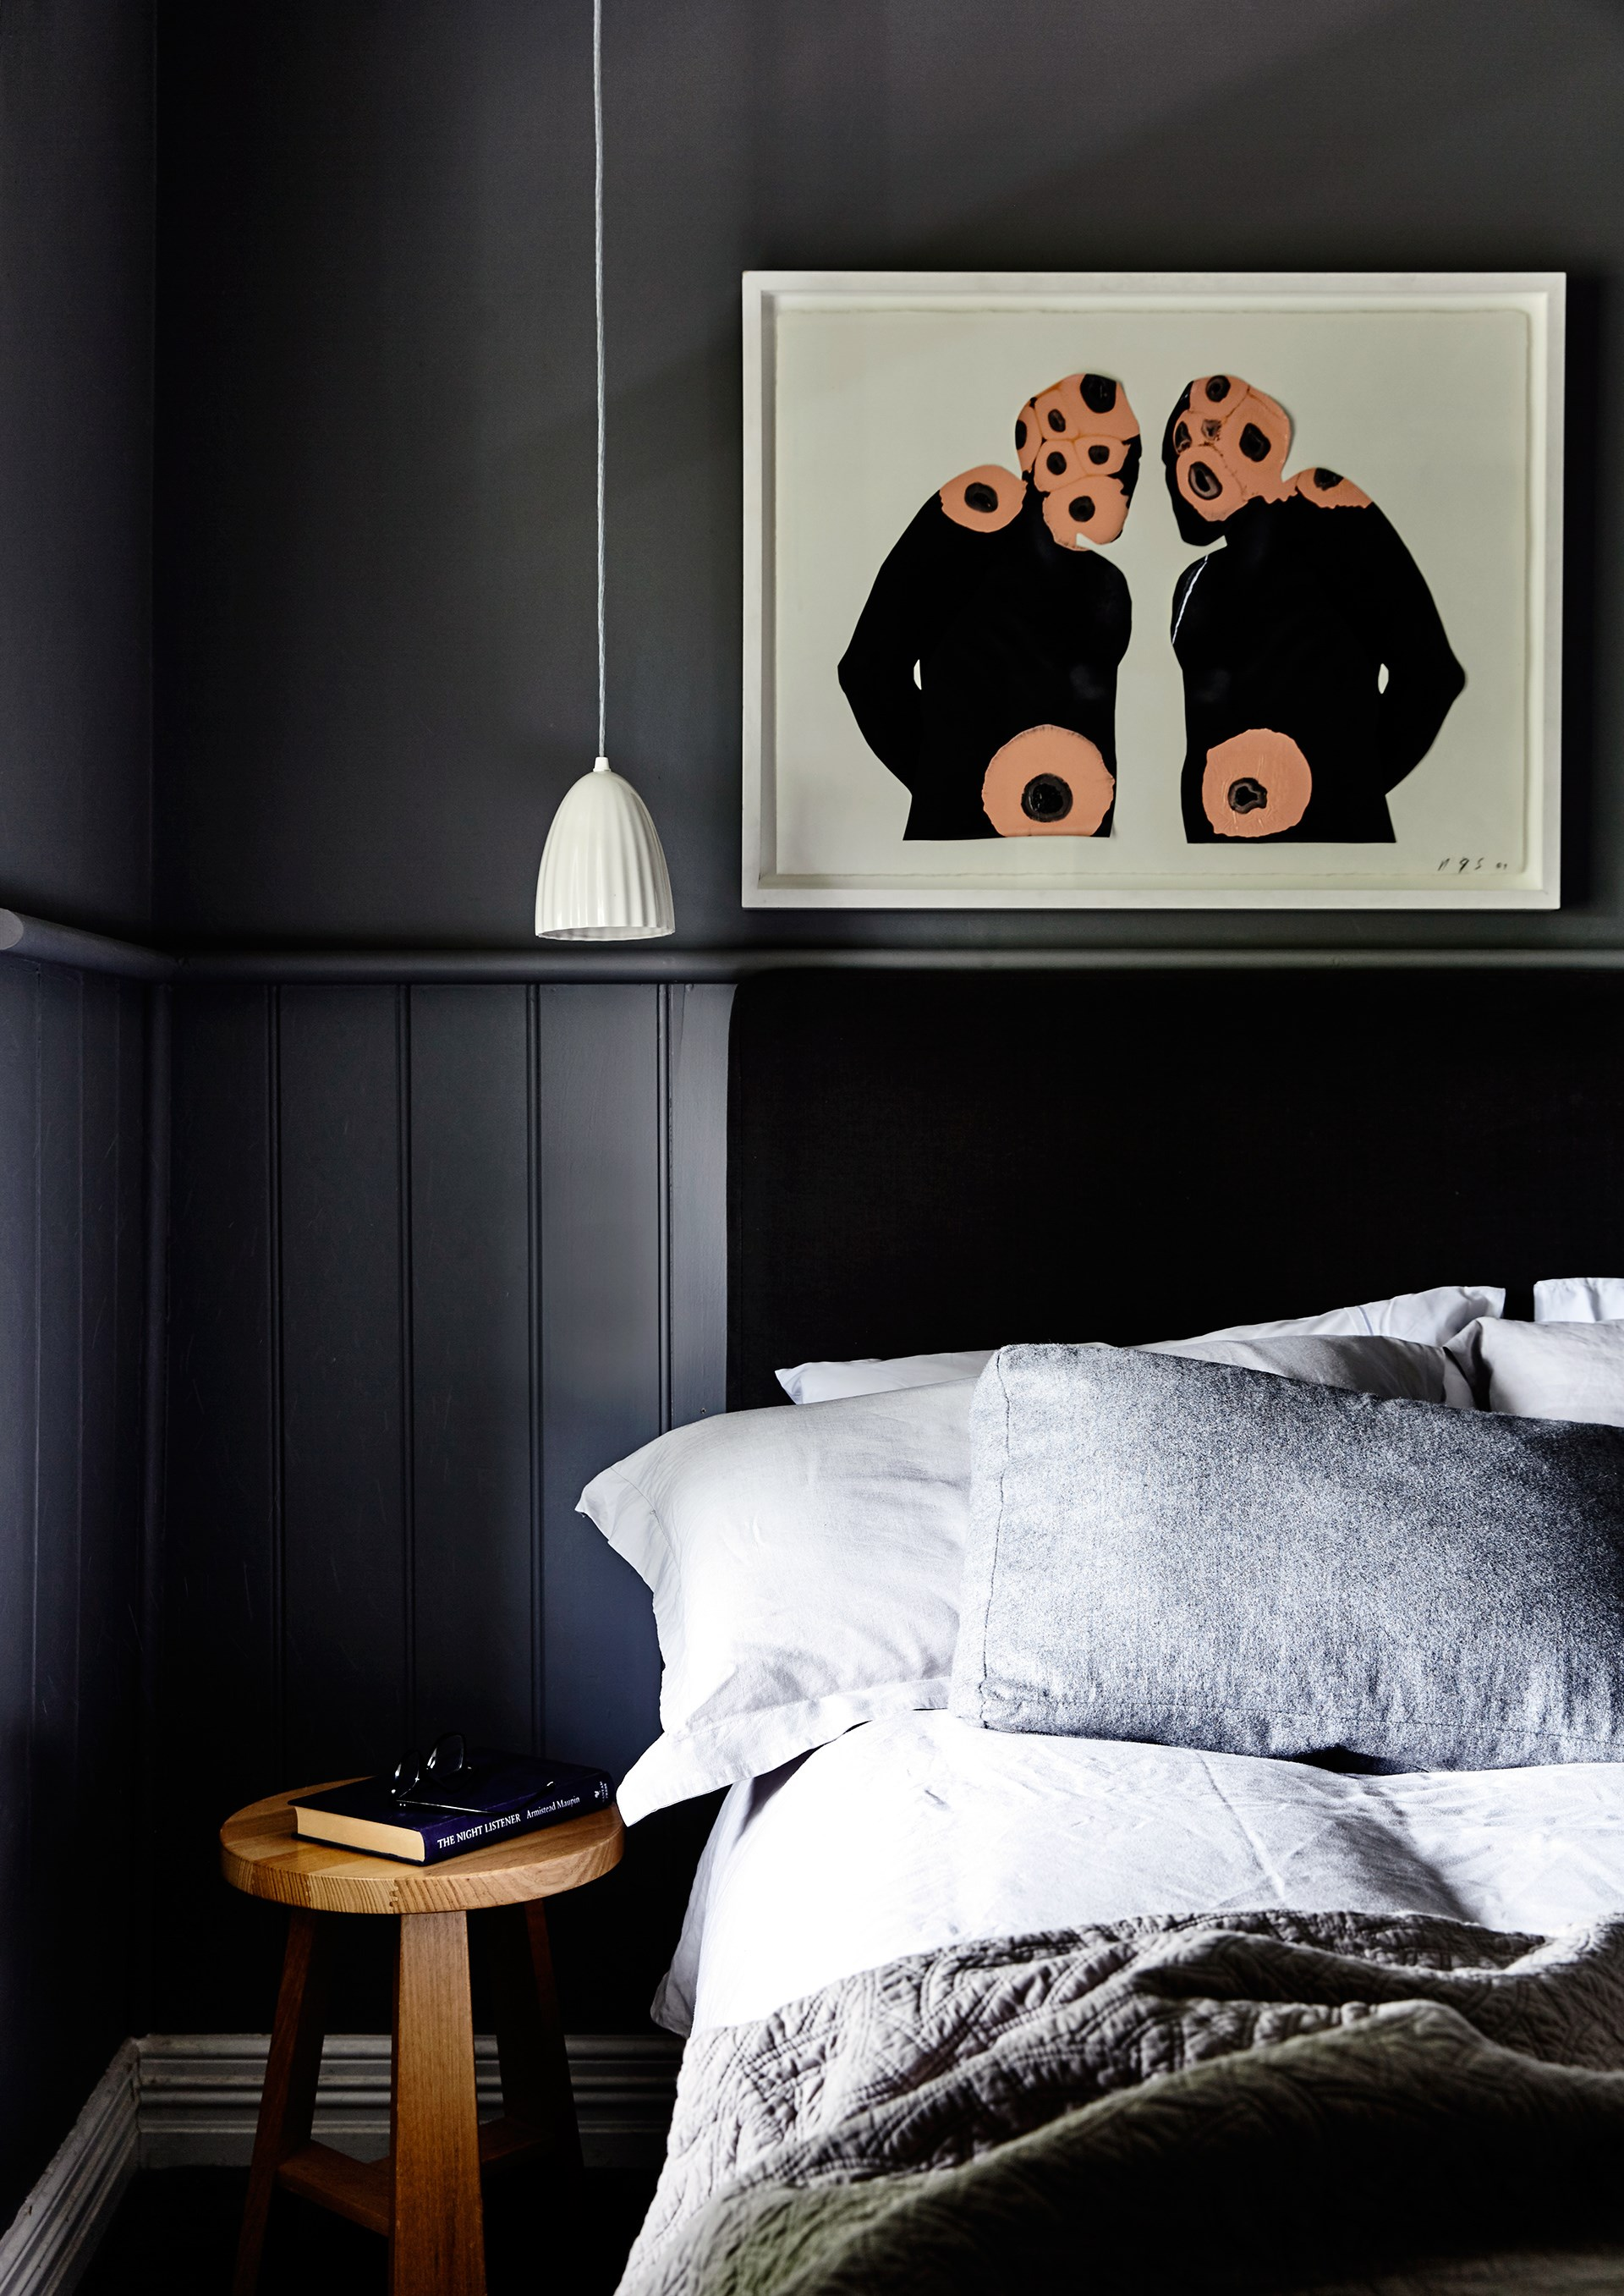 Dado-style wall panelling has a cosy effect in the front bedroom of this [chic country cottage](http://www.homestolove.com.au/interior-designer-capitalises-on-cottage-charm-2636). *Photo: Derek Swalwell*